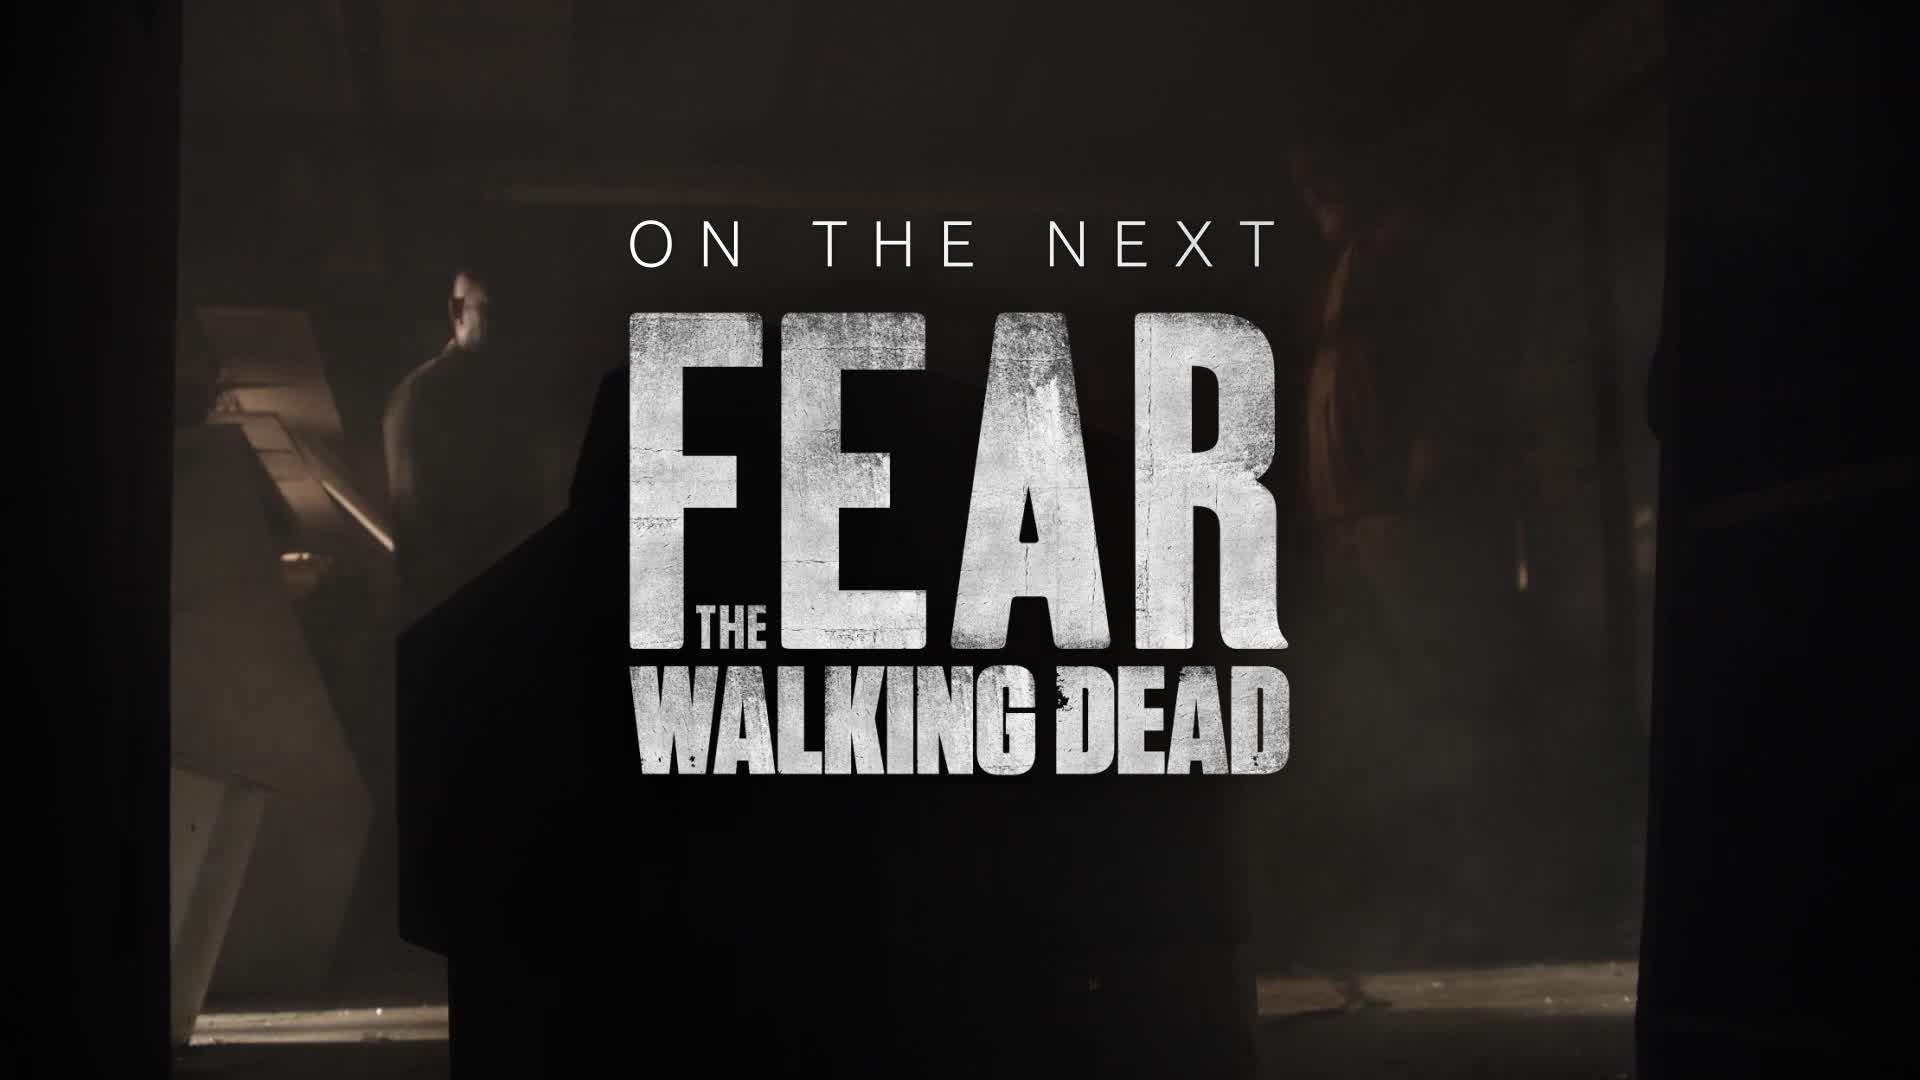 Fear the Walking Dead (Season 5) - Episode 15 Trailer [HD] screen capture